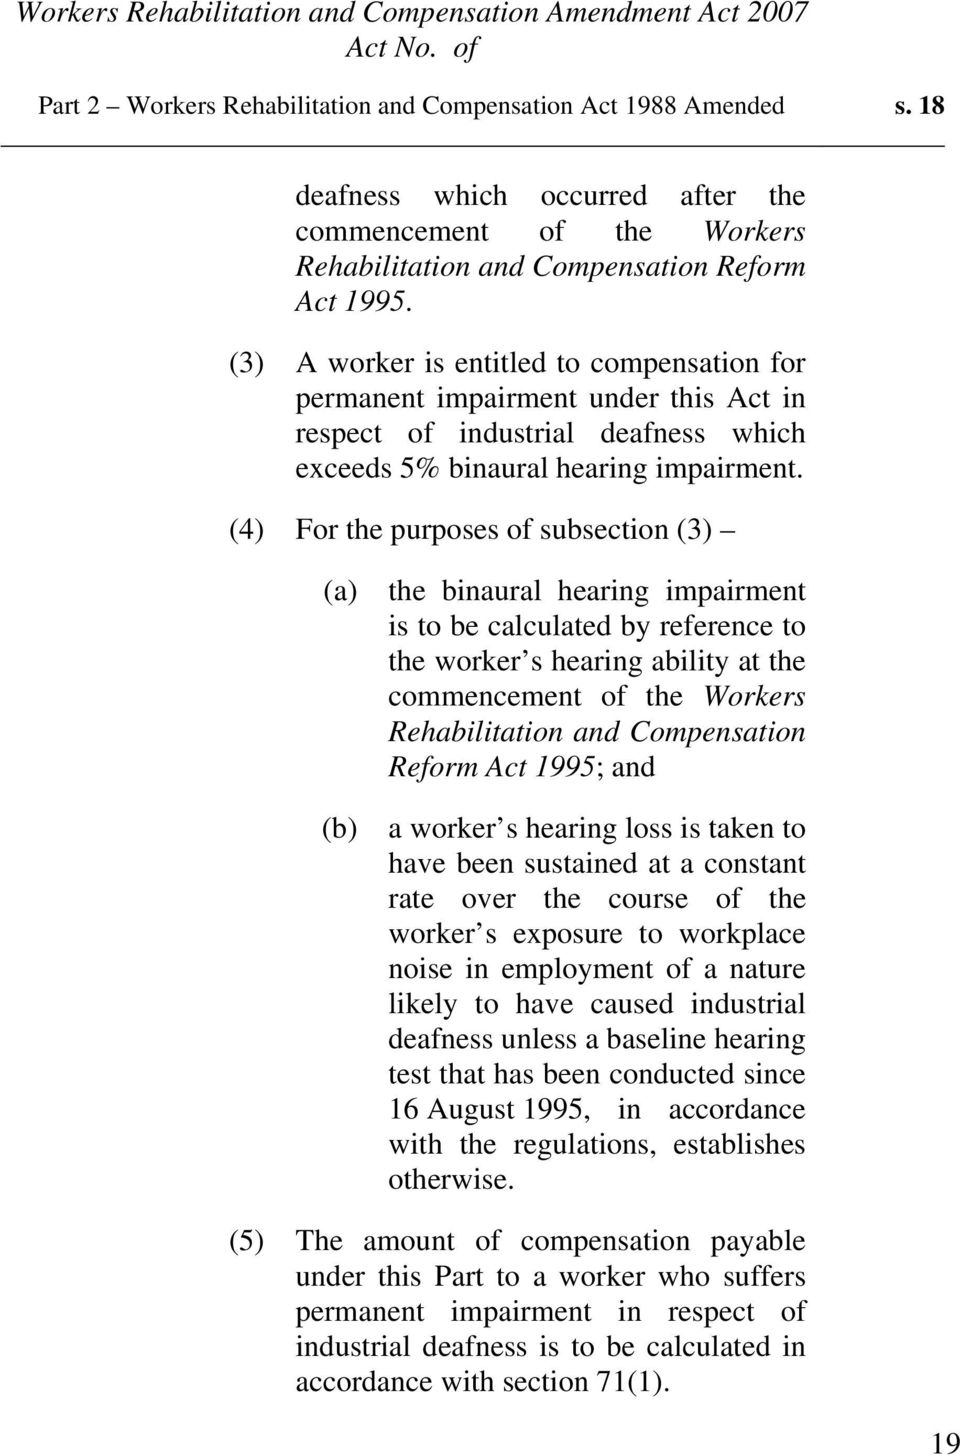 (4) For the purposes of subsection (3) (a) the binaural hearing impairment is to be calculated by reference to the worker s hearing ability at the commencement of the Workers Rehabilitation and